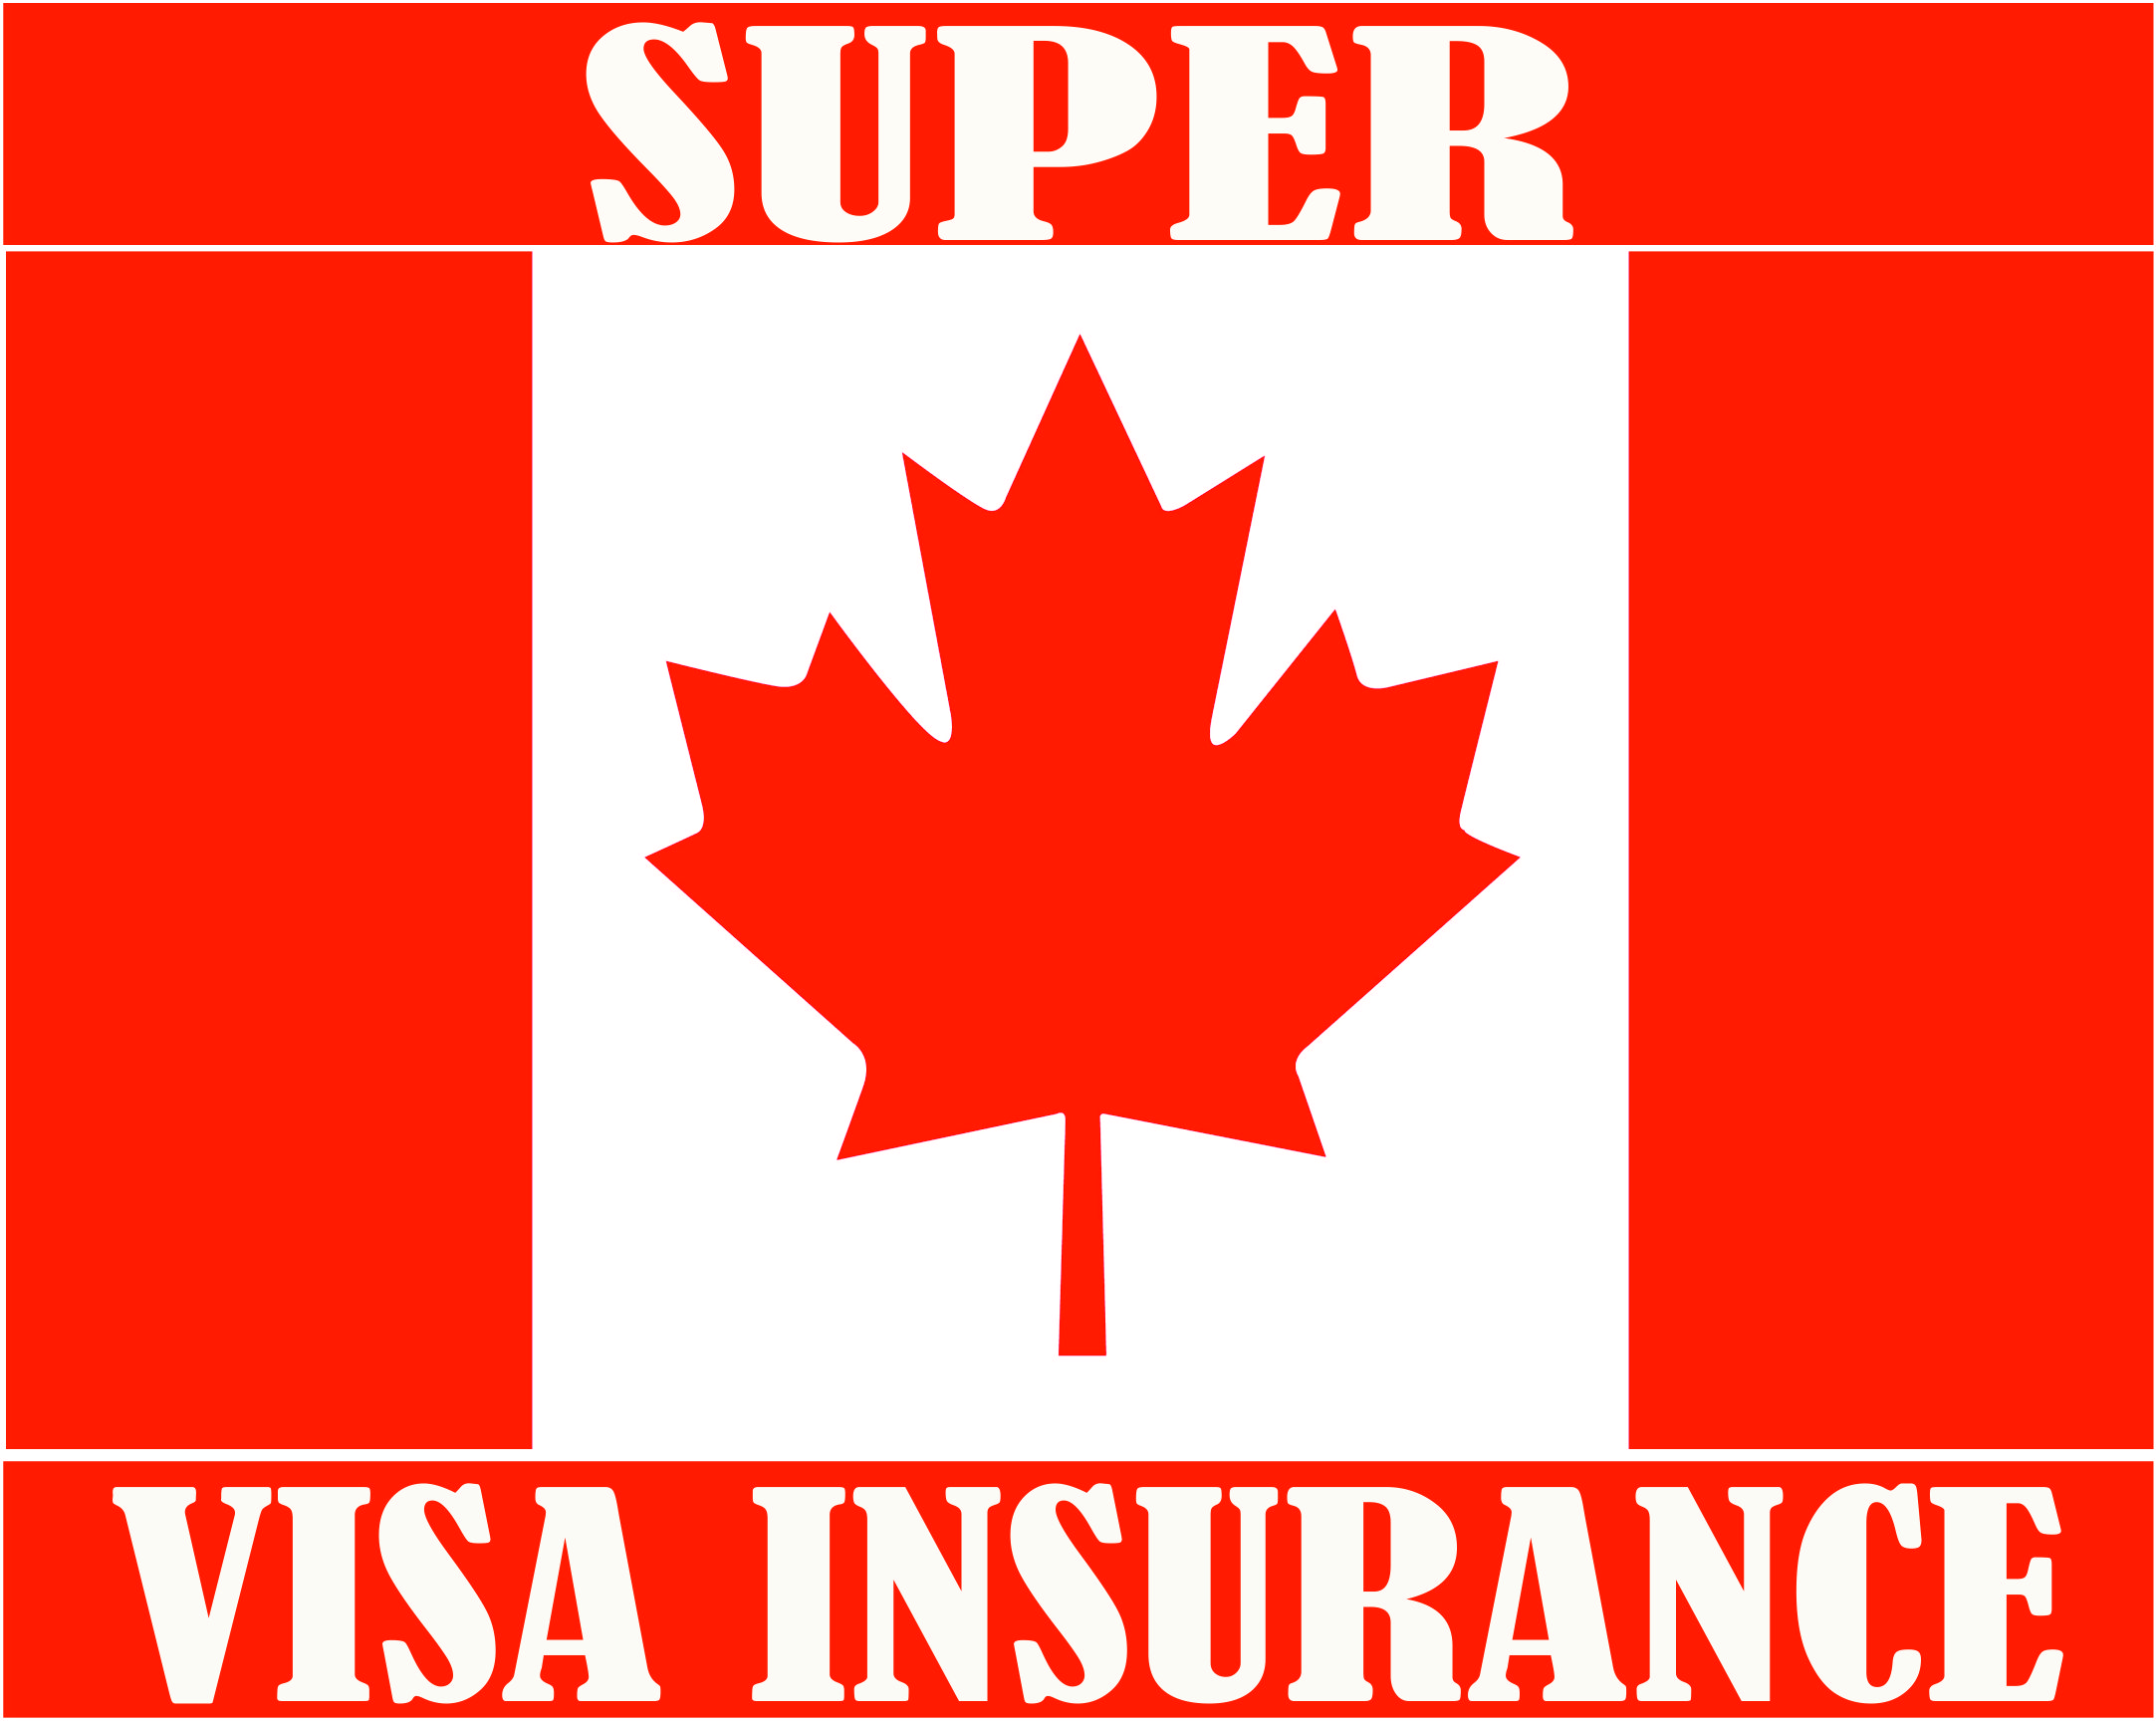 Super visa Insurance / Piyush Girdhar   403 -590-8595